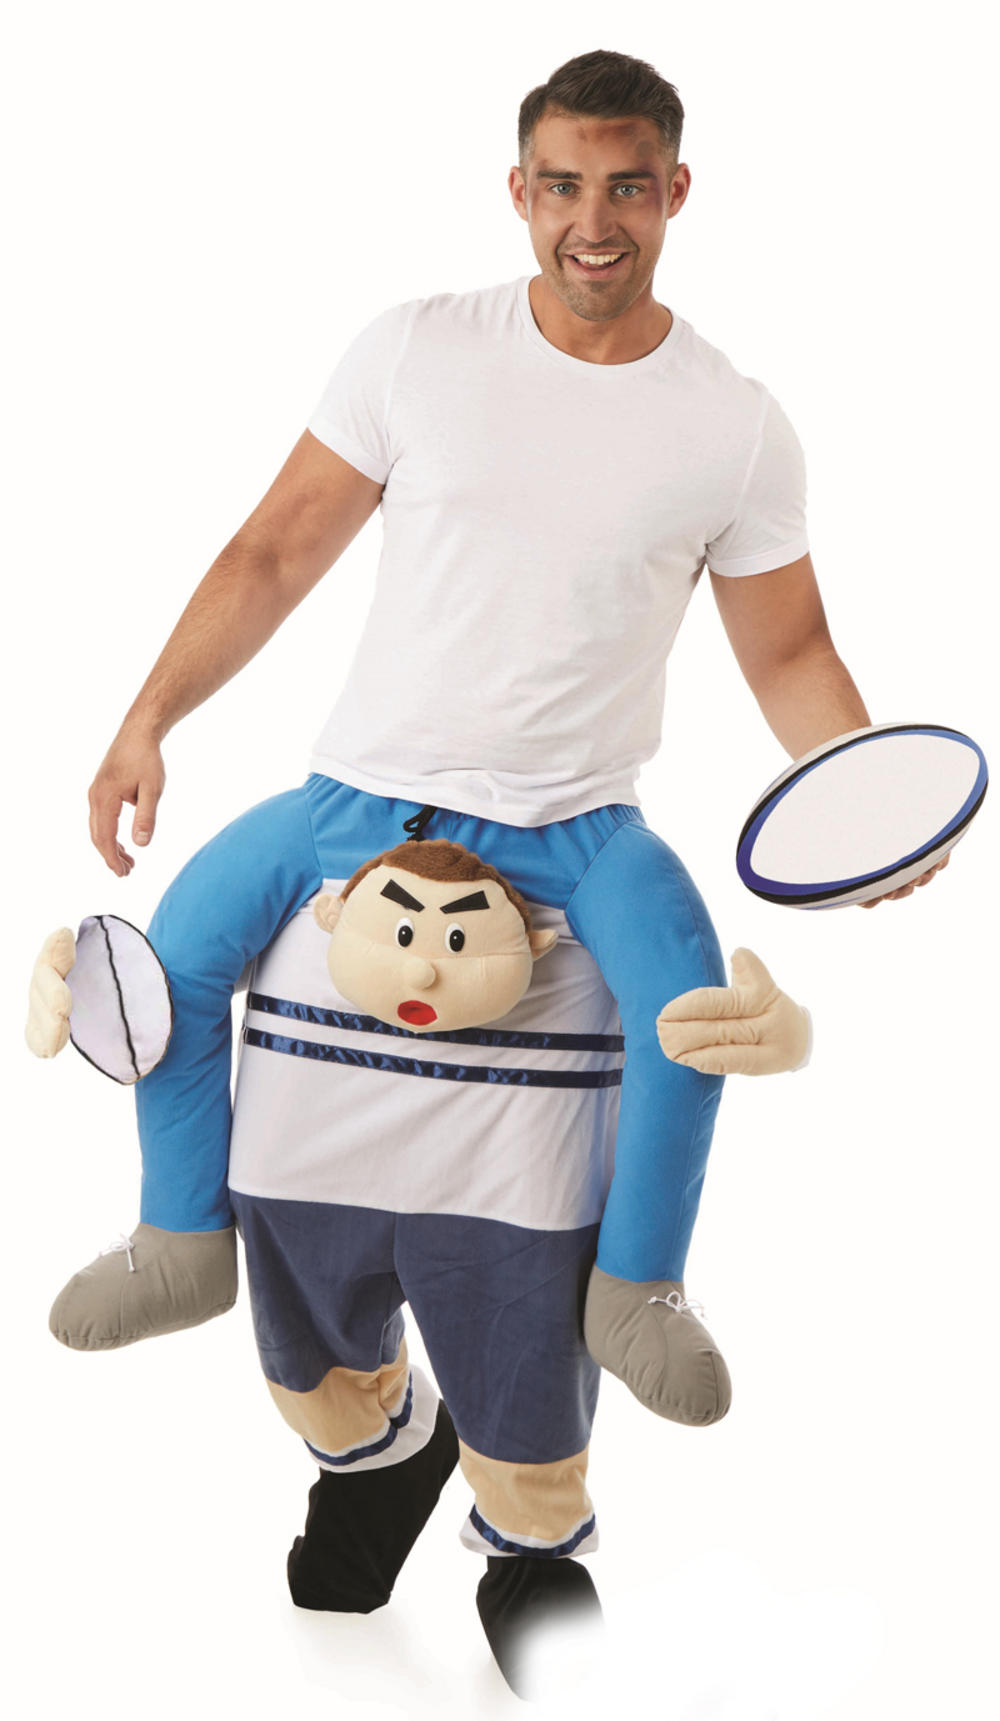 Lift Me Up Rubgy Player Costume